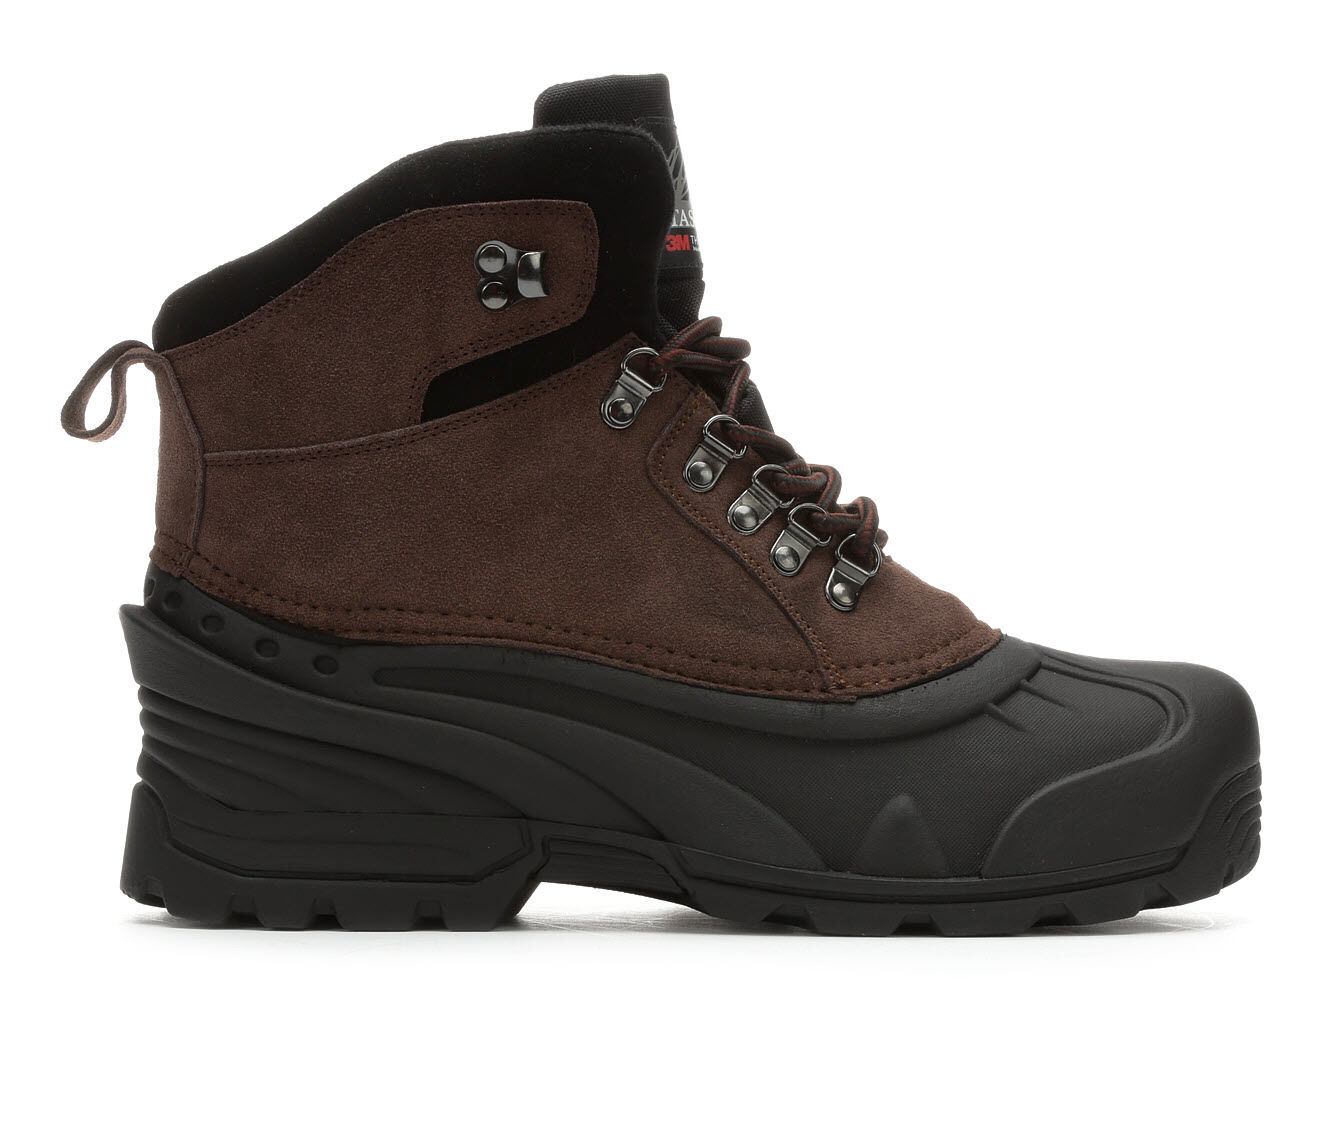 Buying Cheap Men's Itasca Sonoma Ice House II Winter Boots Brown